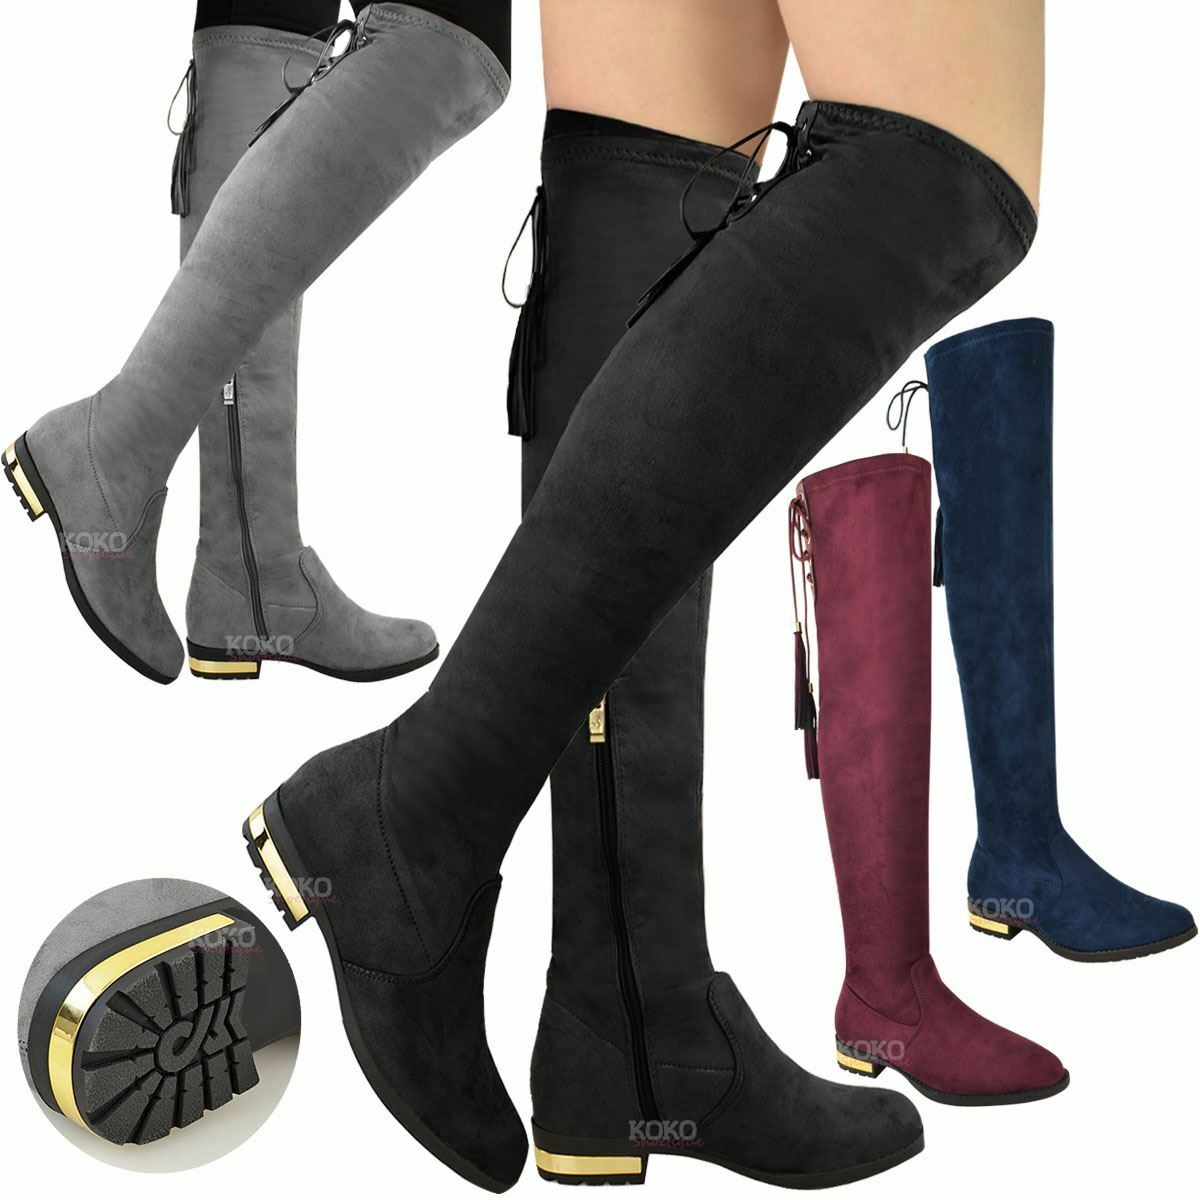 NEW OVER Mujer LADIES THIGH HIGH OVER NEW THE KNEE LONG LOW HEEL TASSEL botas Zapatos Talla d90069